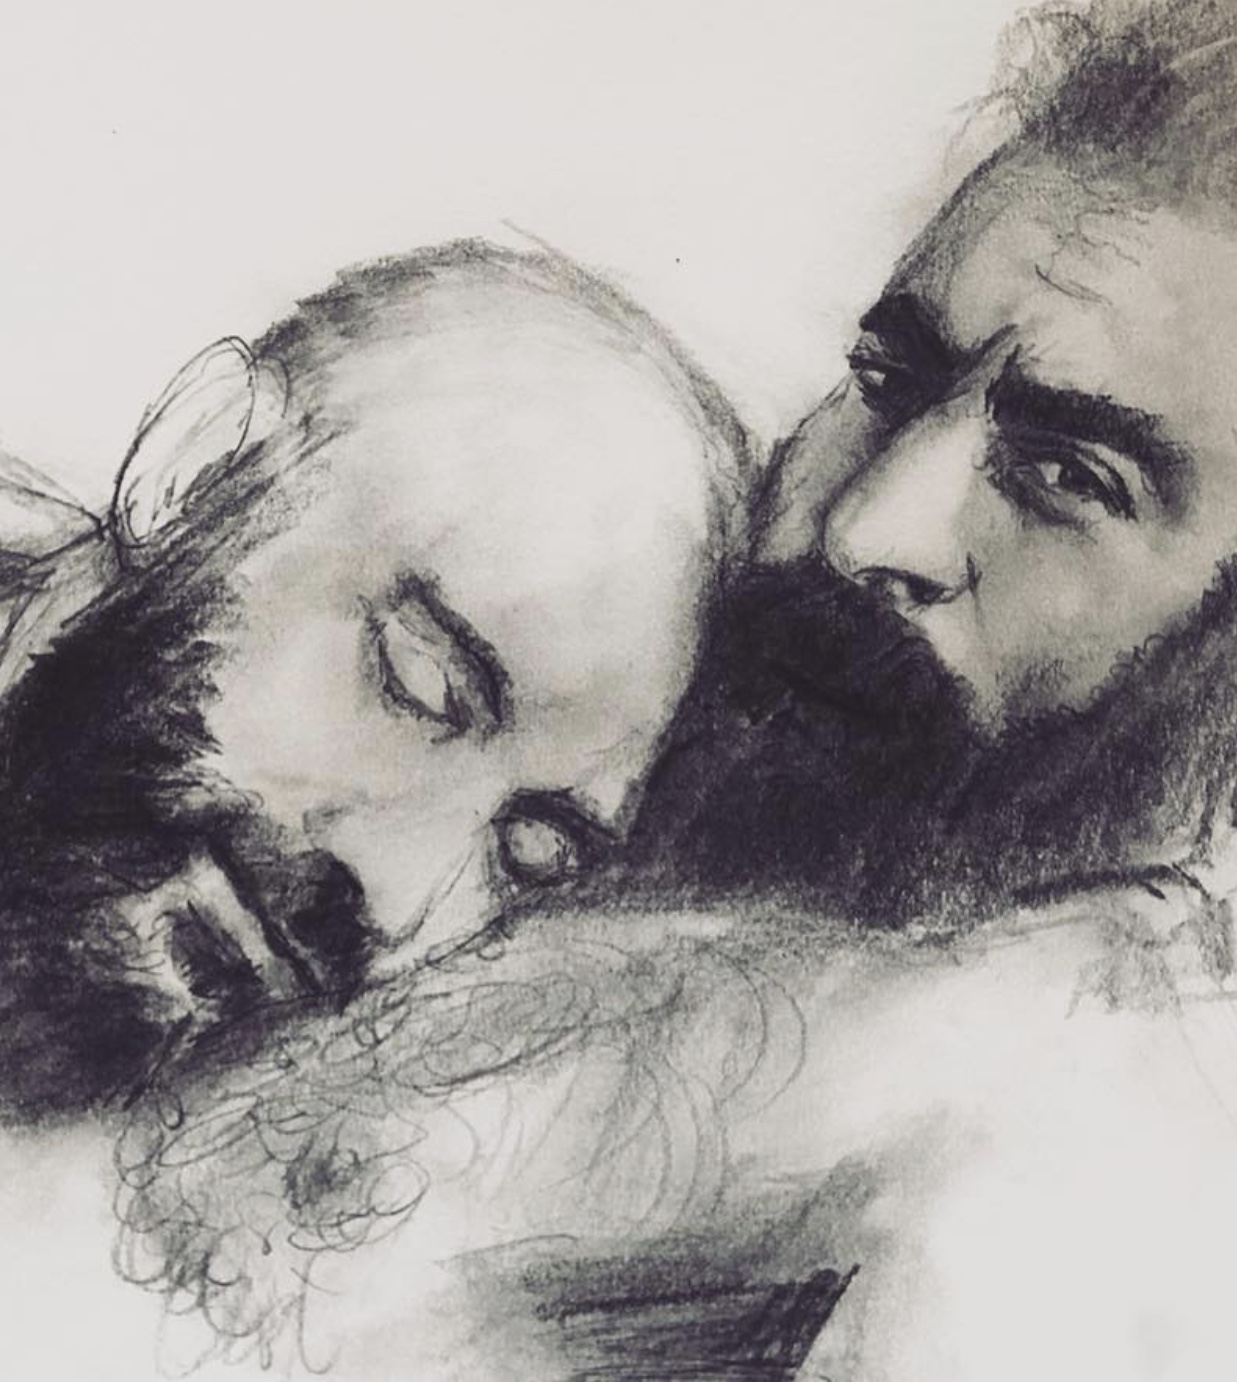 Spanish Guys in Love.  This is what I was looking for...  Original Drawing available at Adam's Nest in Provincetown.  https://adamsnest.com/collections/saul-lyons